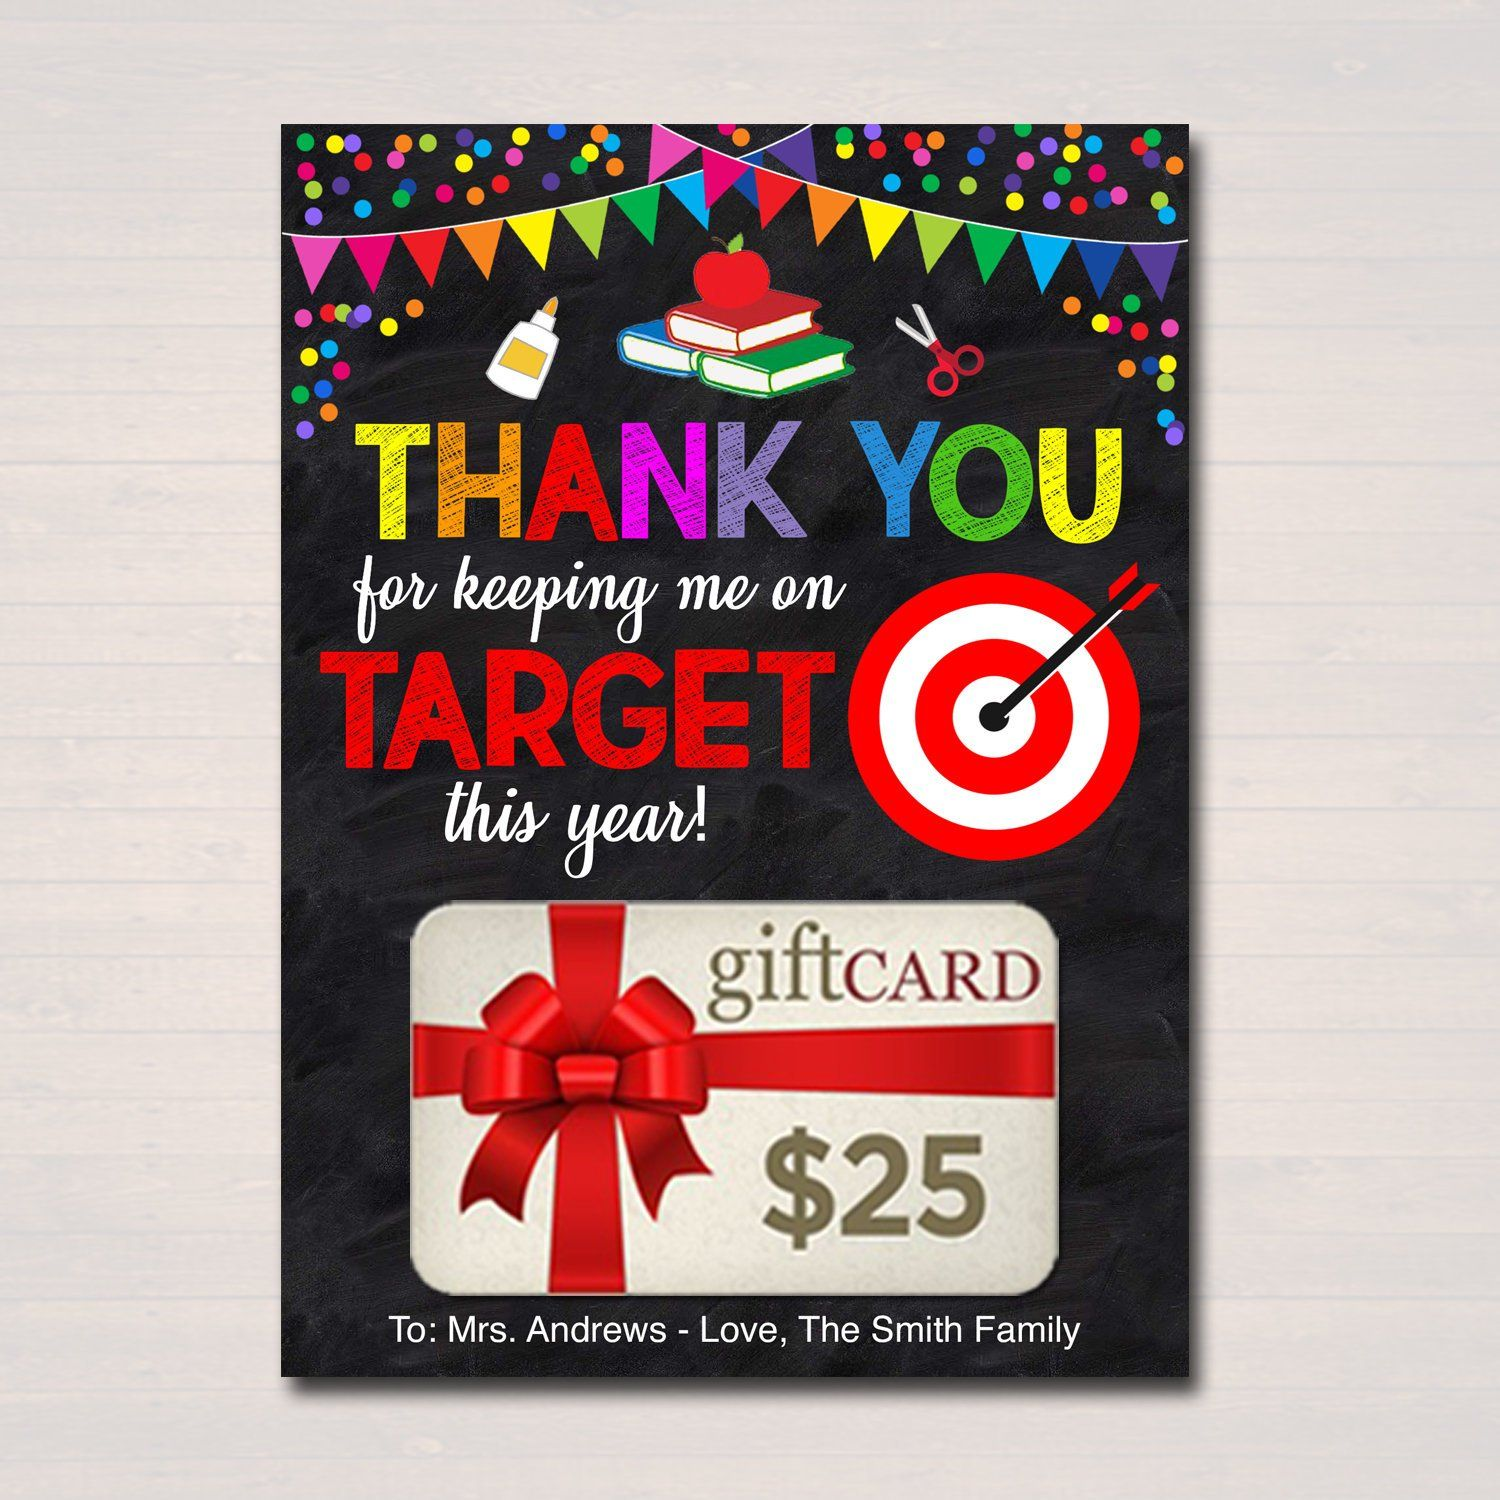 Editable gift card holder thanks for keeping me on target